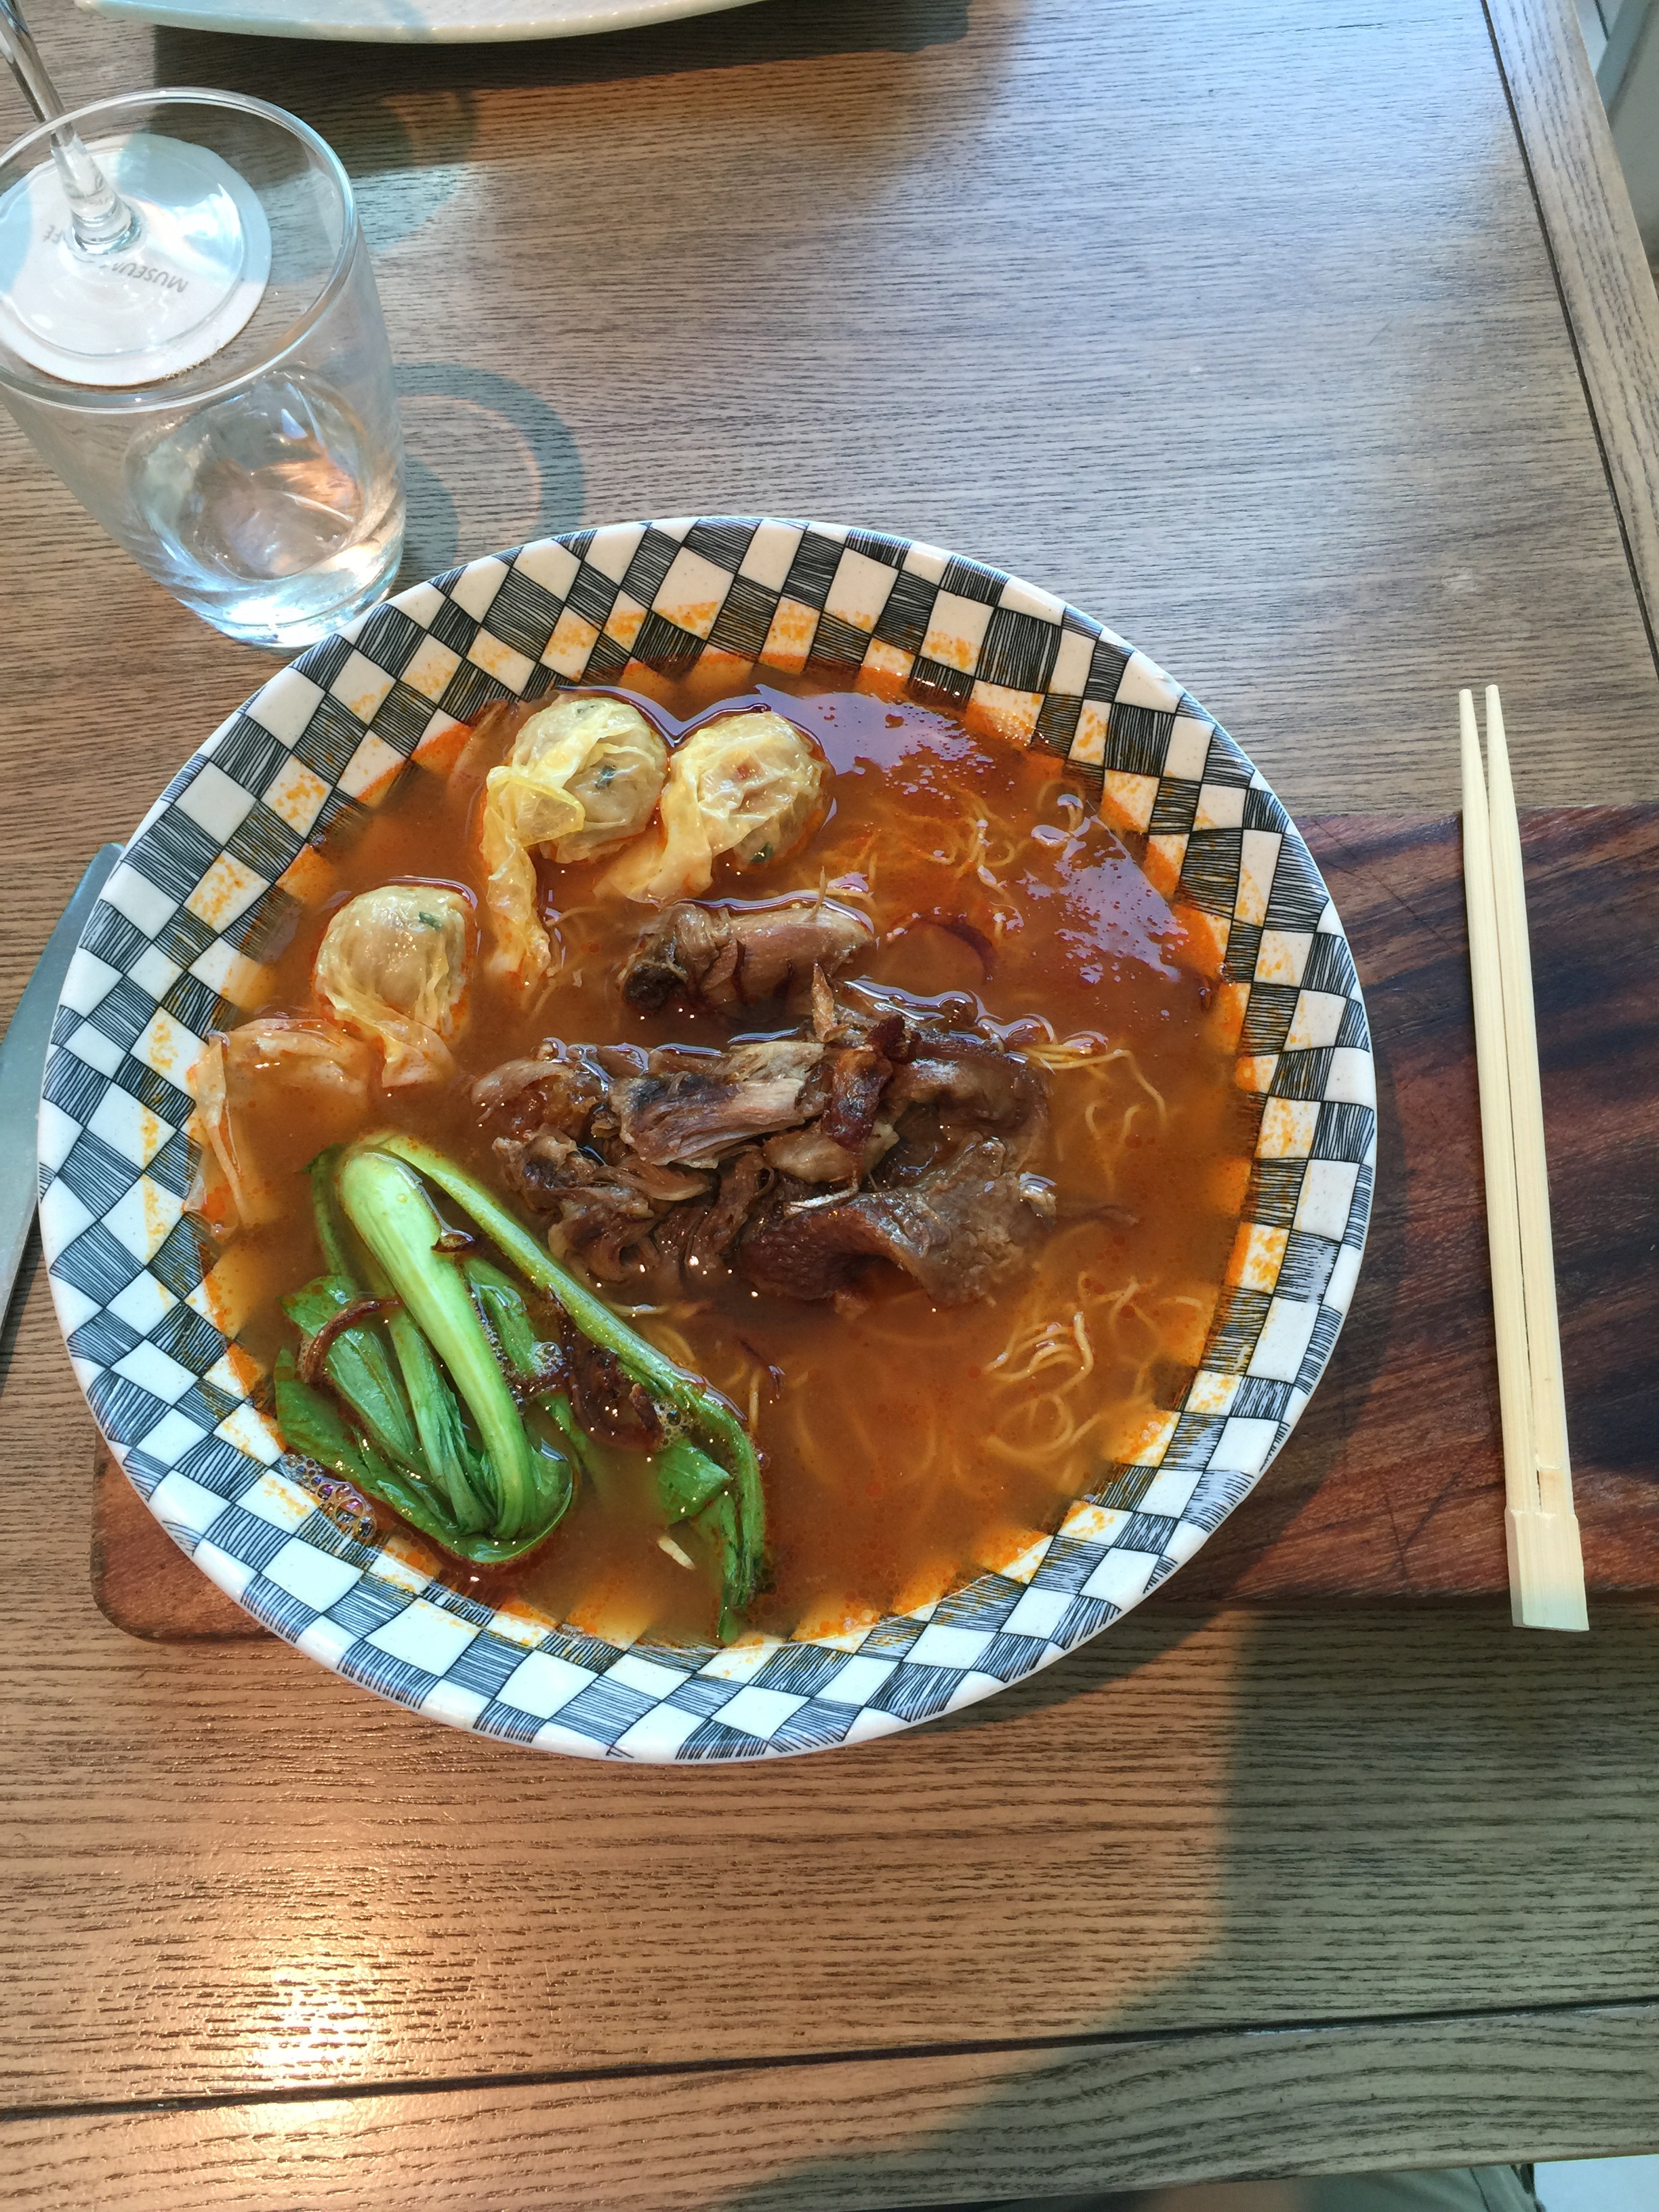 One of the beautiful, tangy ramen dishes served at the Museum Cafe